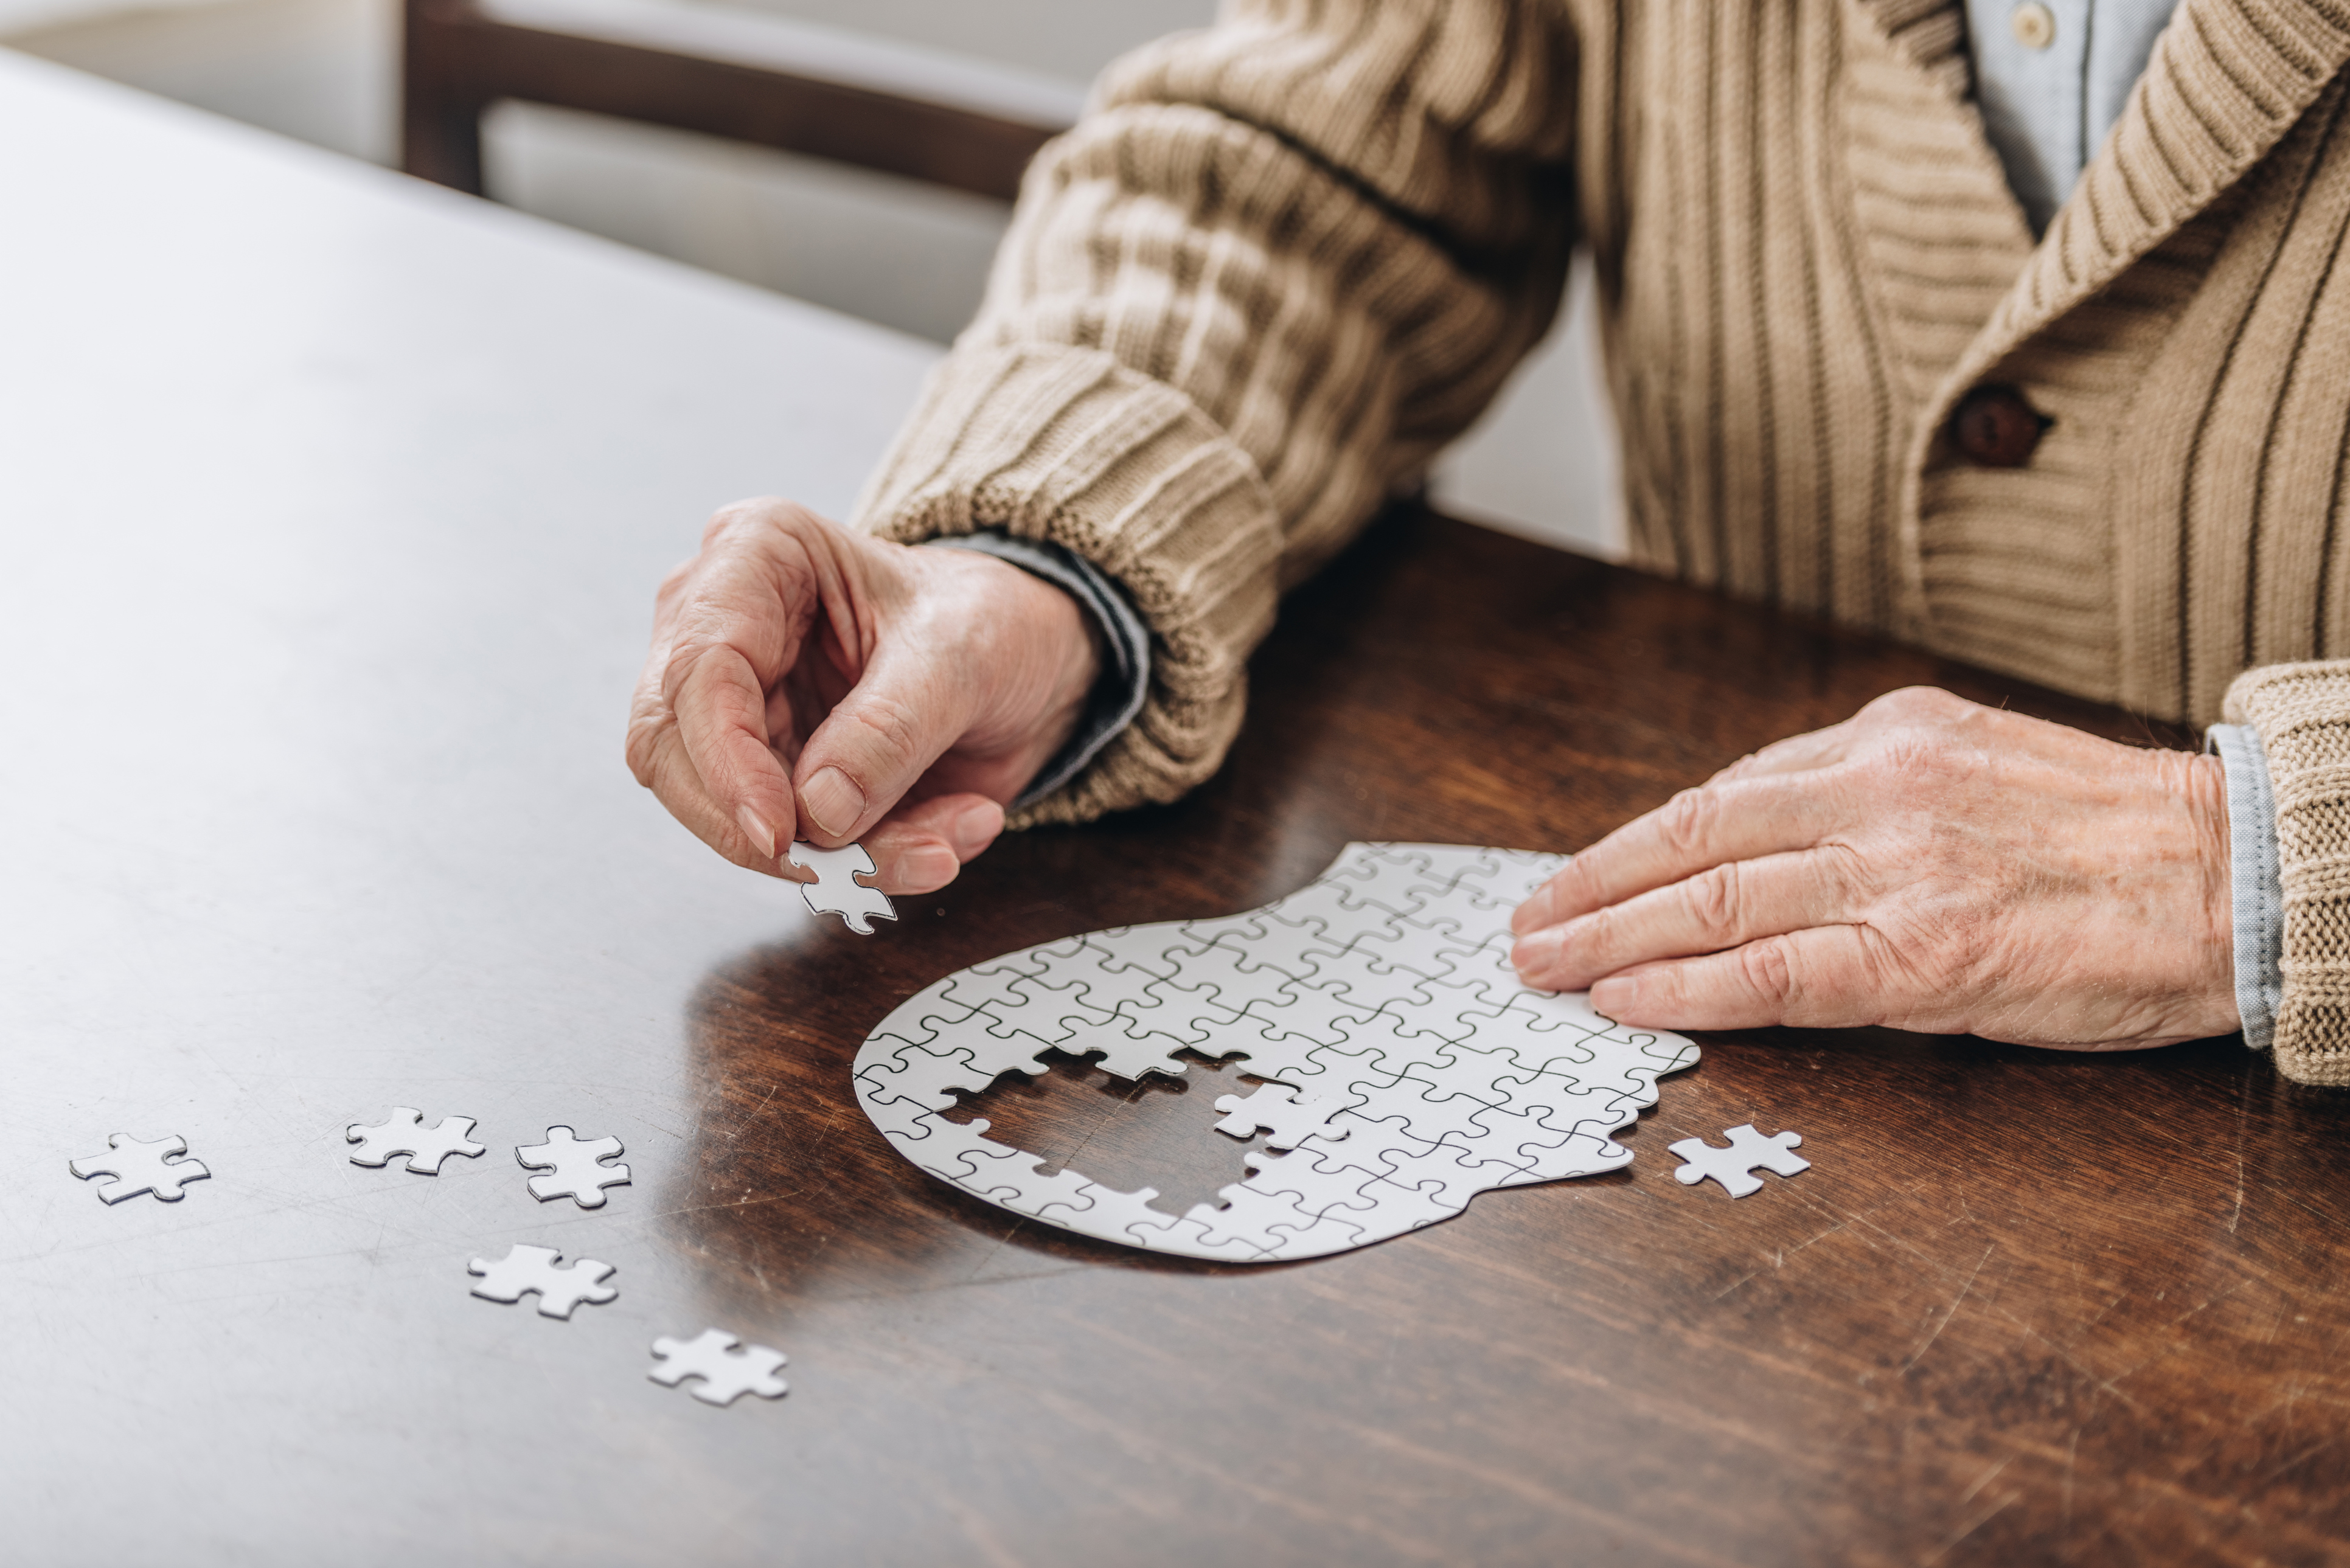 A senior man works on a puzzle, as he knows the importance of brain health